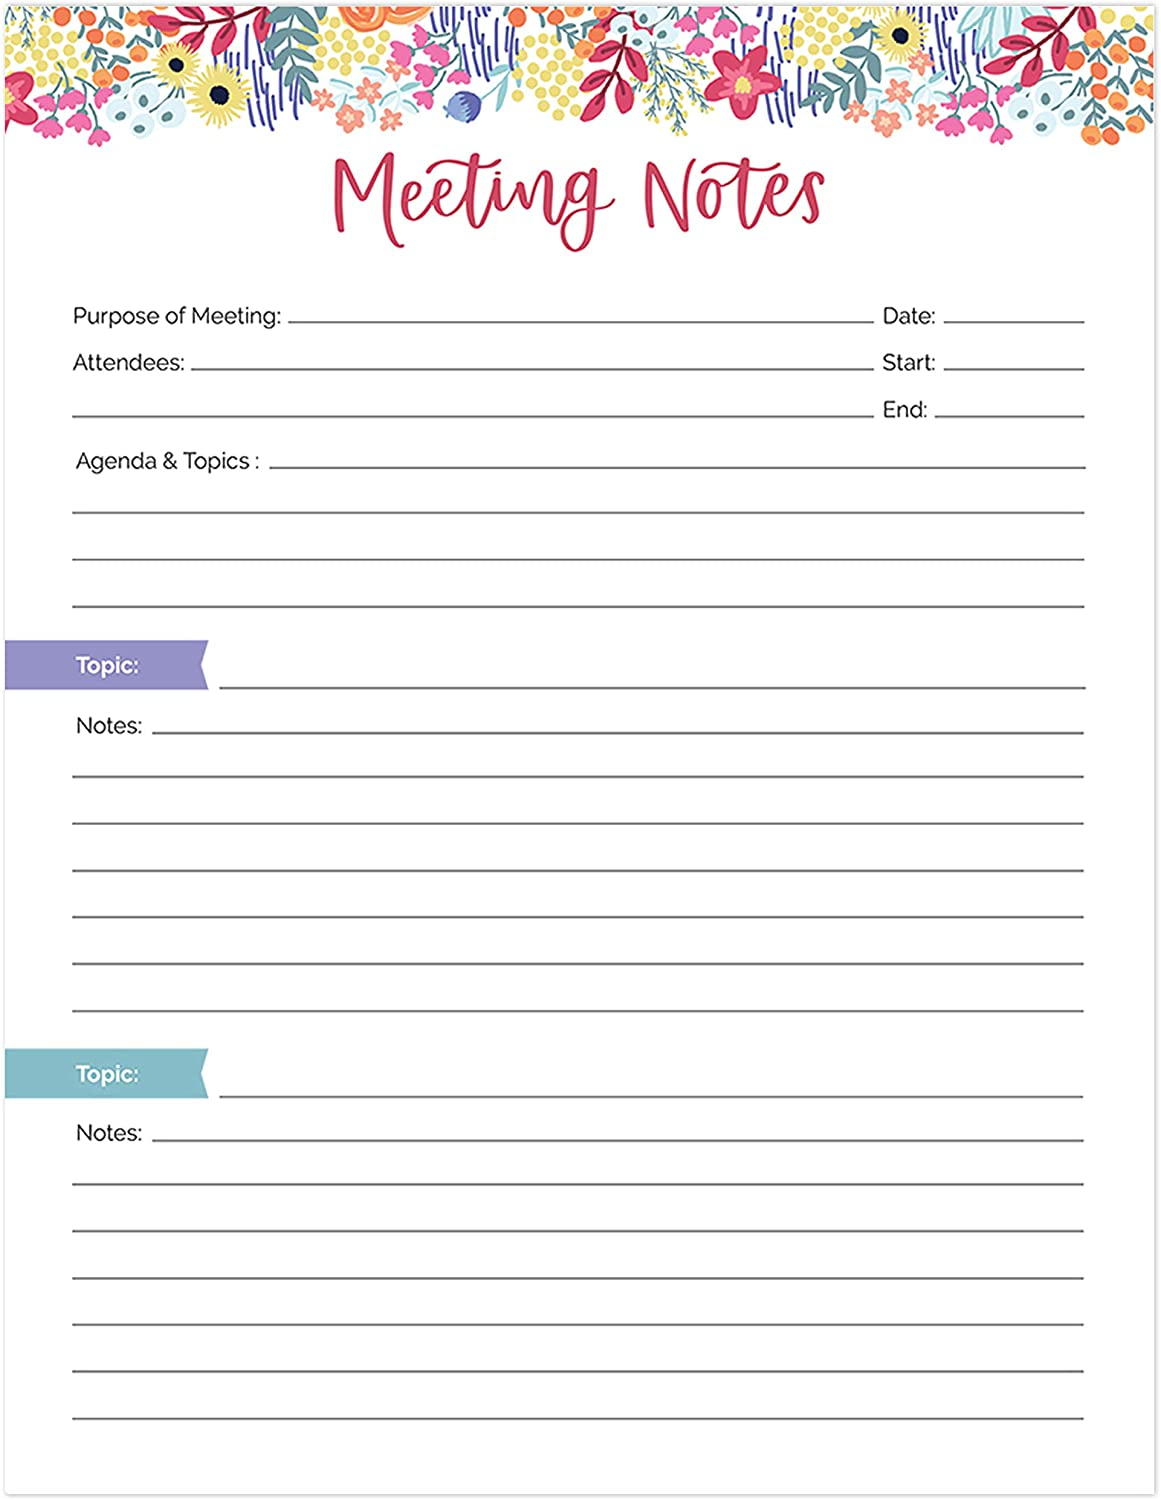 "bloom daily planners 8.5"" x 11"" Double Sided Meeting Pad - Topics, Takeaways, Action Items & Follow-Ups - Undated Meeting Notes Agenda Organizer"